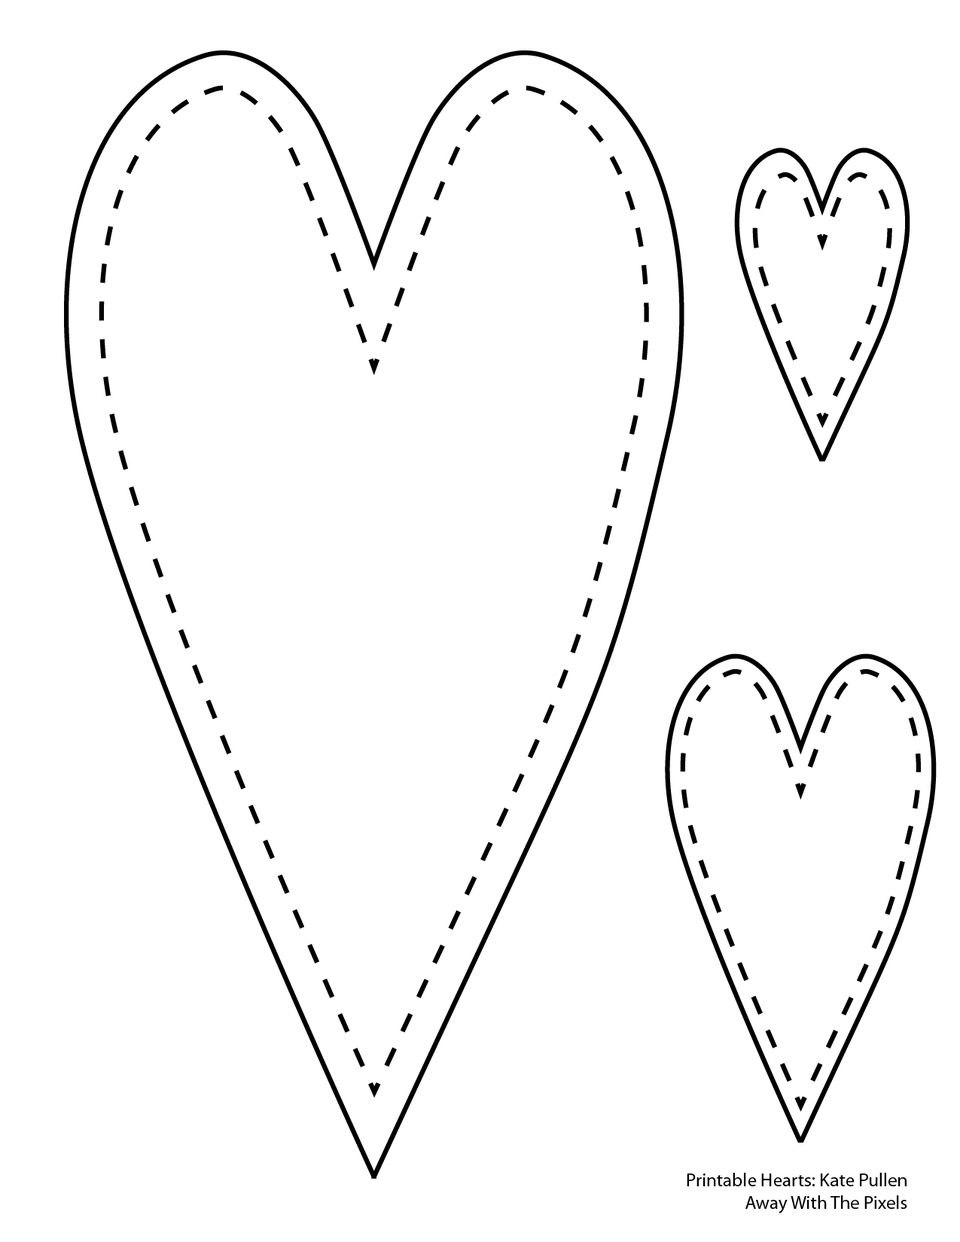 Free Printable Heart Templates In Free Printable Heart Templates